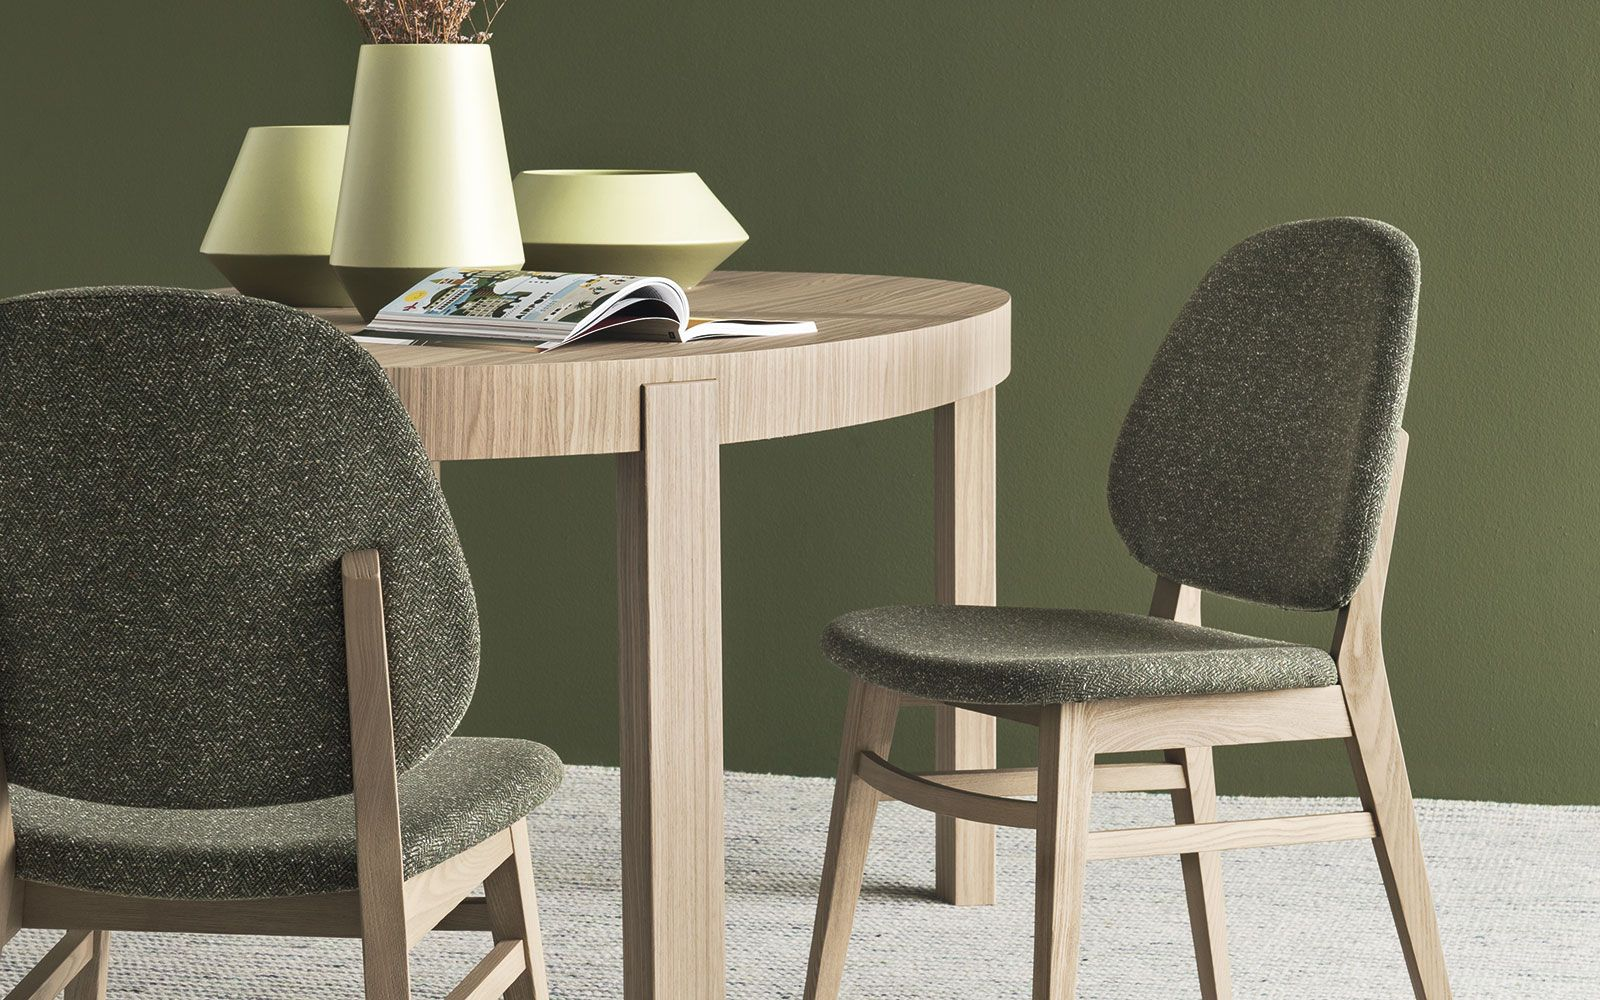 Super Wooden Chair Covered In Tweed Colette Calligaris Cs 1491 Lamtechconsult Wood Chair Design Ideas Lamtechconsultcom